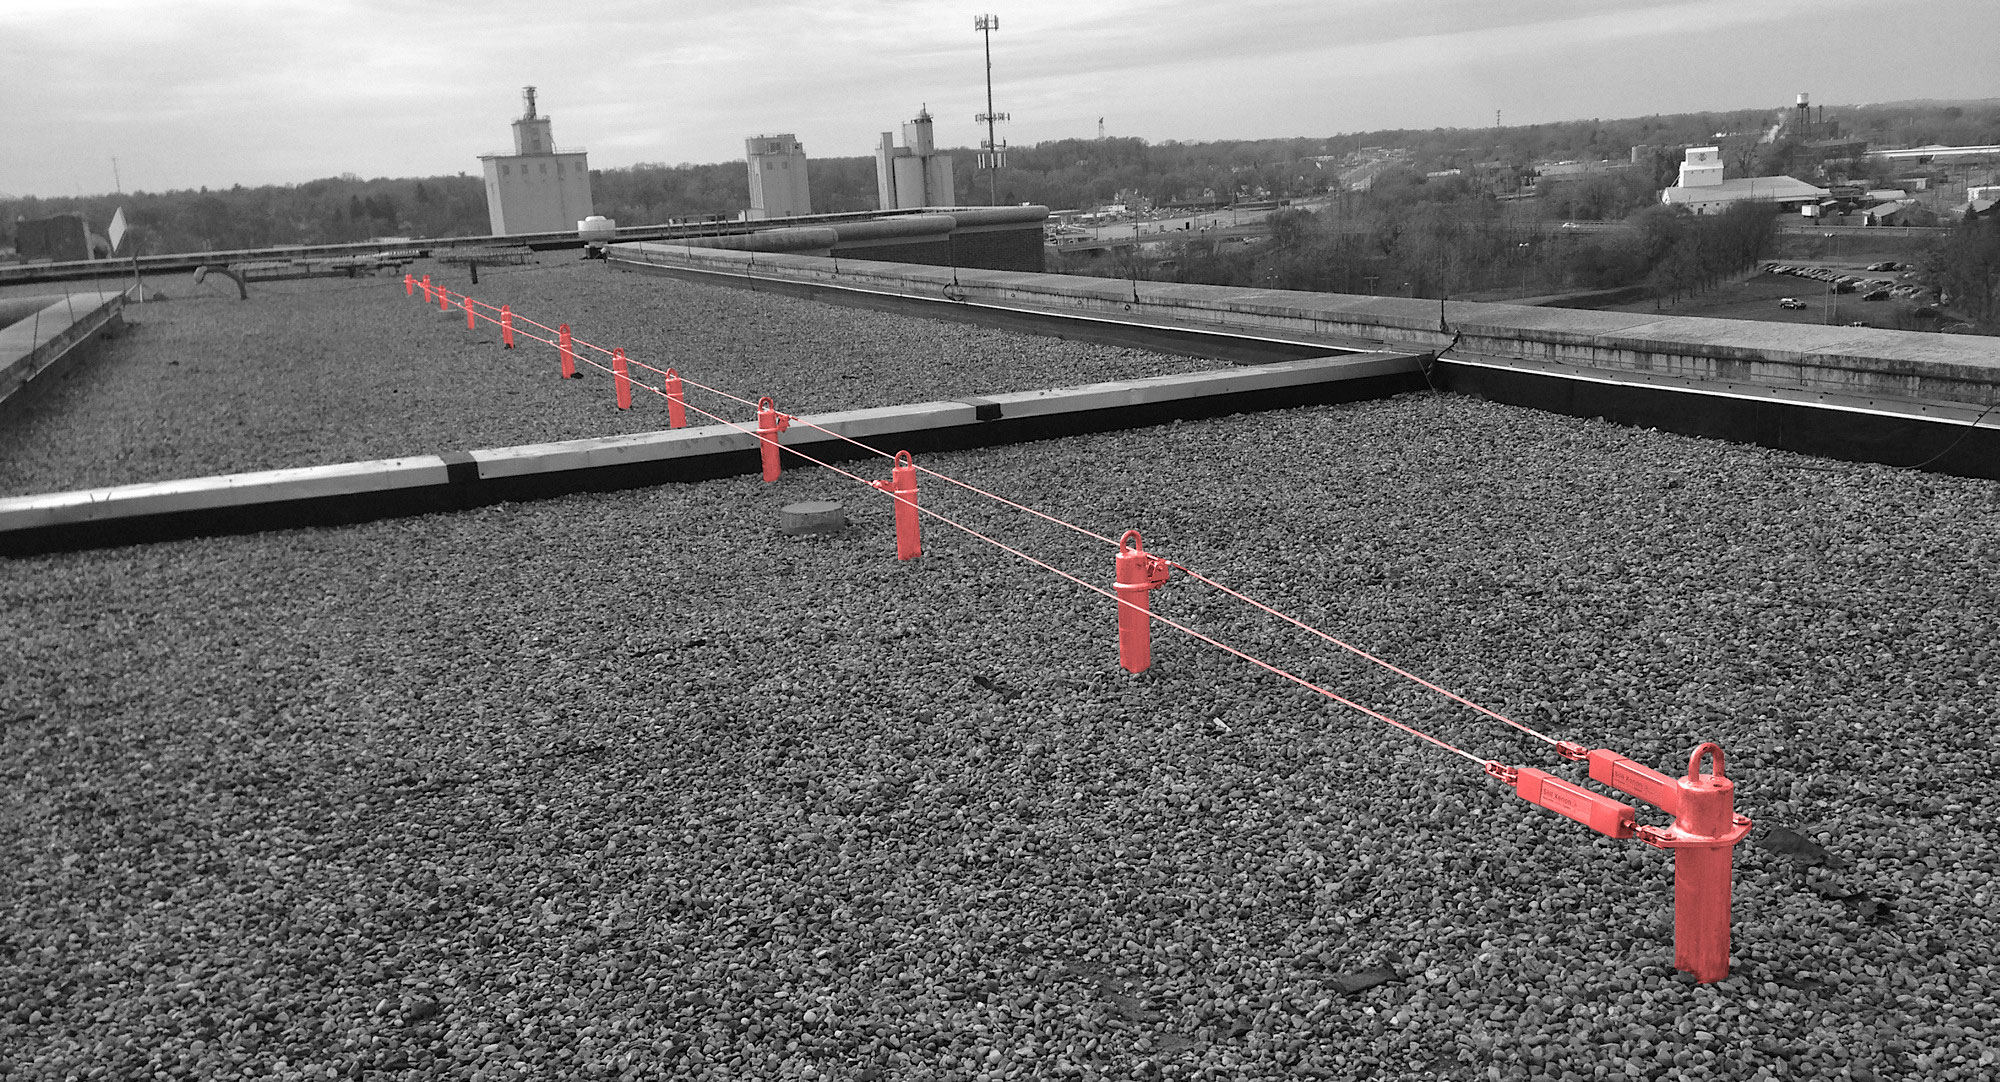 Fall protection equipment by Skyline Fall Protection. A rooftop anchorage system.